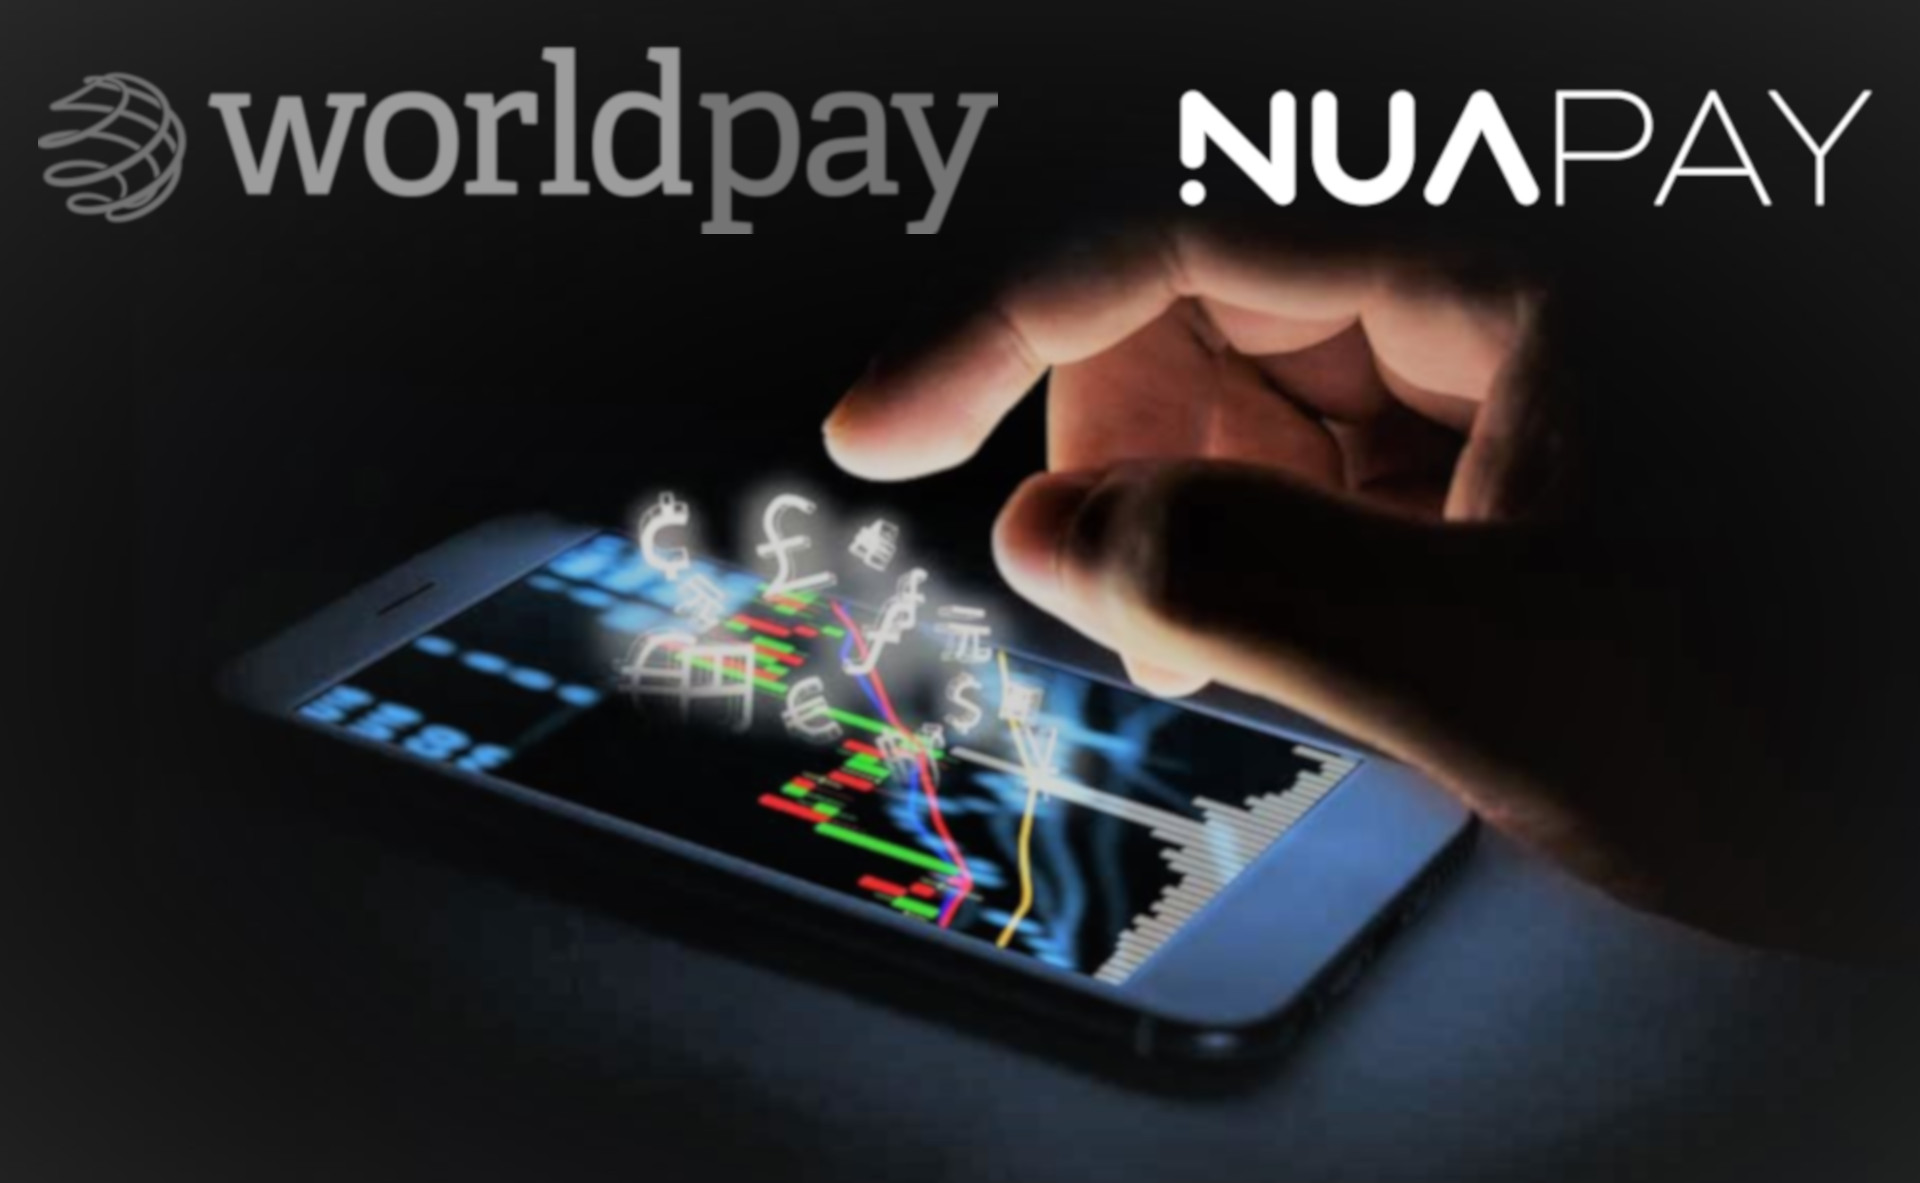 Worldpay chose Nuapay as a solution for recurring payments